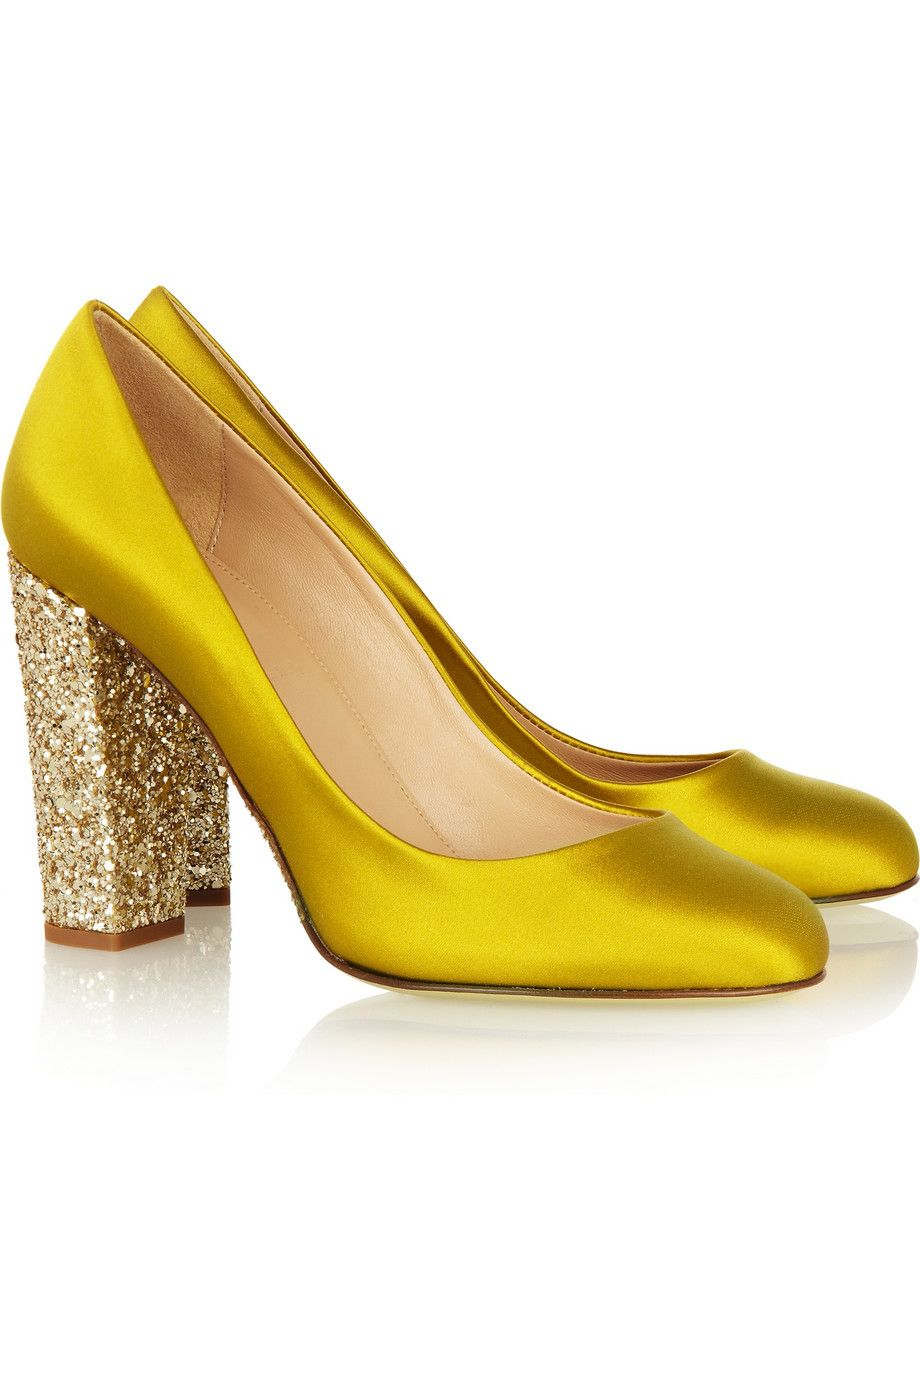 Chartreuse Collection Etta Glitter Embellished Satin Pumps J Crew Satin Pumps Heels Colorful Wedding Shoes